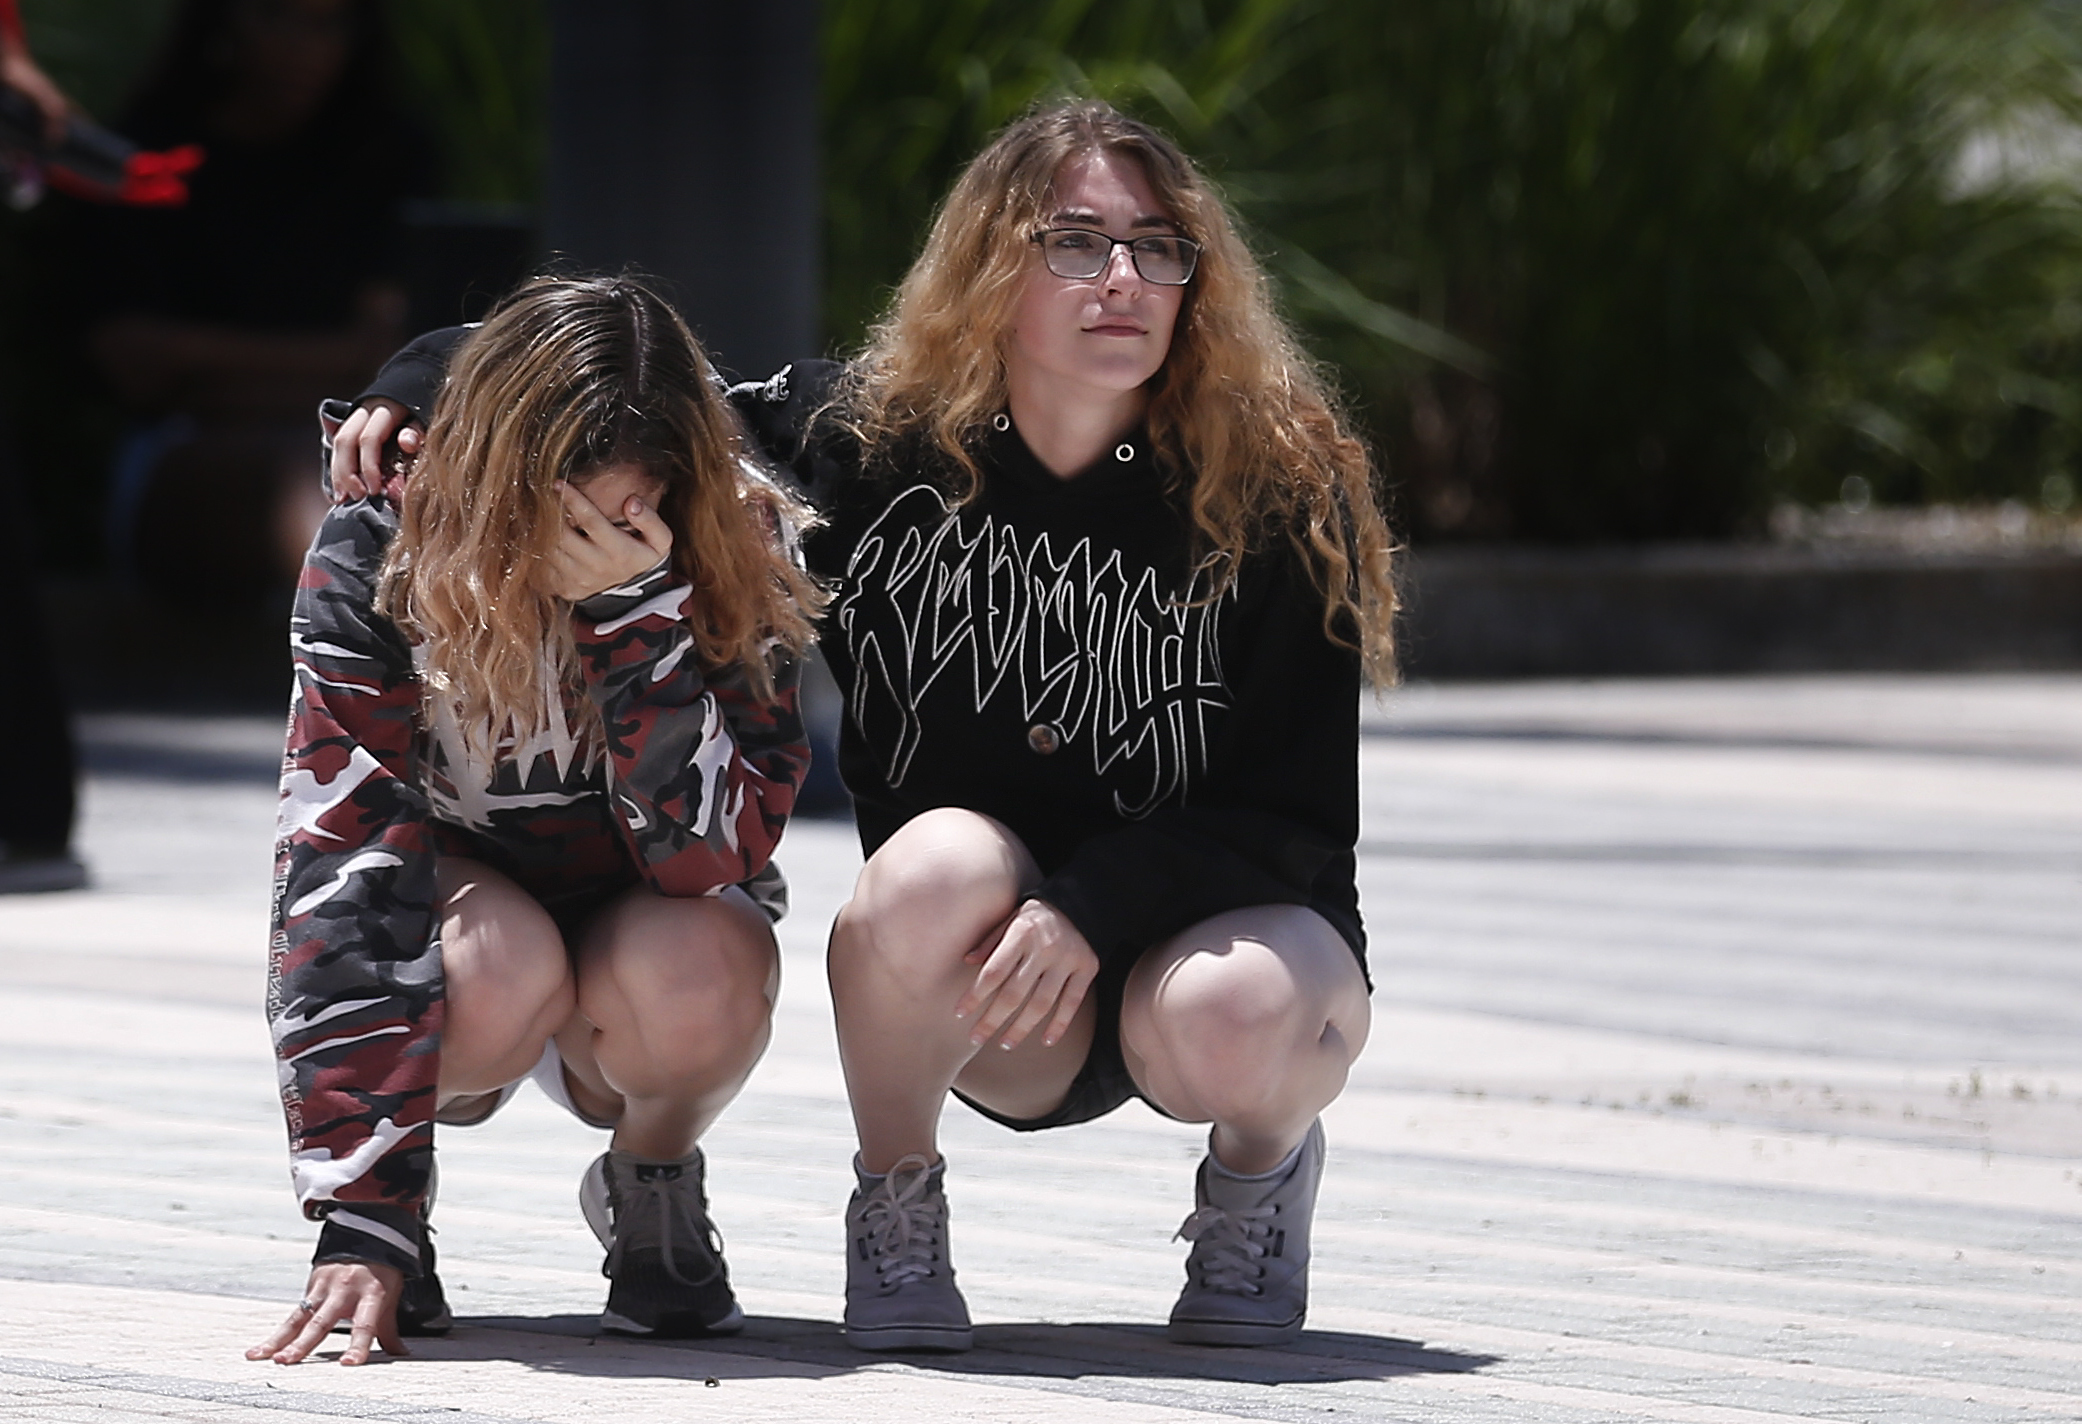 <div class='meta'><div class='origin-logo' data-origin='AP'></div><span class='caption-text' data-credit='AP'>A fan cries, left, as a friend consoles her after a memorial service for rapper, XXXTentacion, Wednesday, June 27, 2018, in Sunrise, Fla. (AP Photo/Brynn Anderson)</span></div>